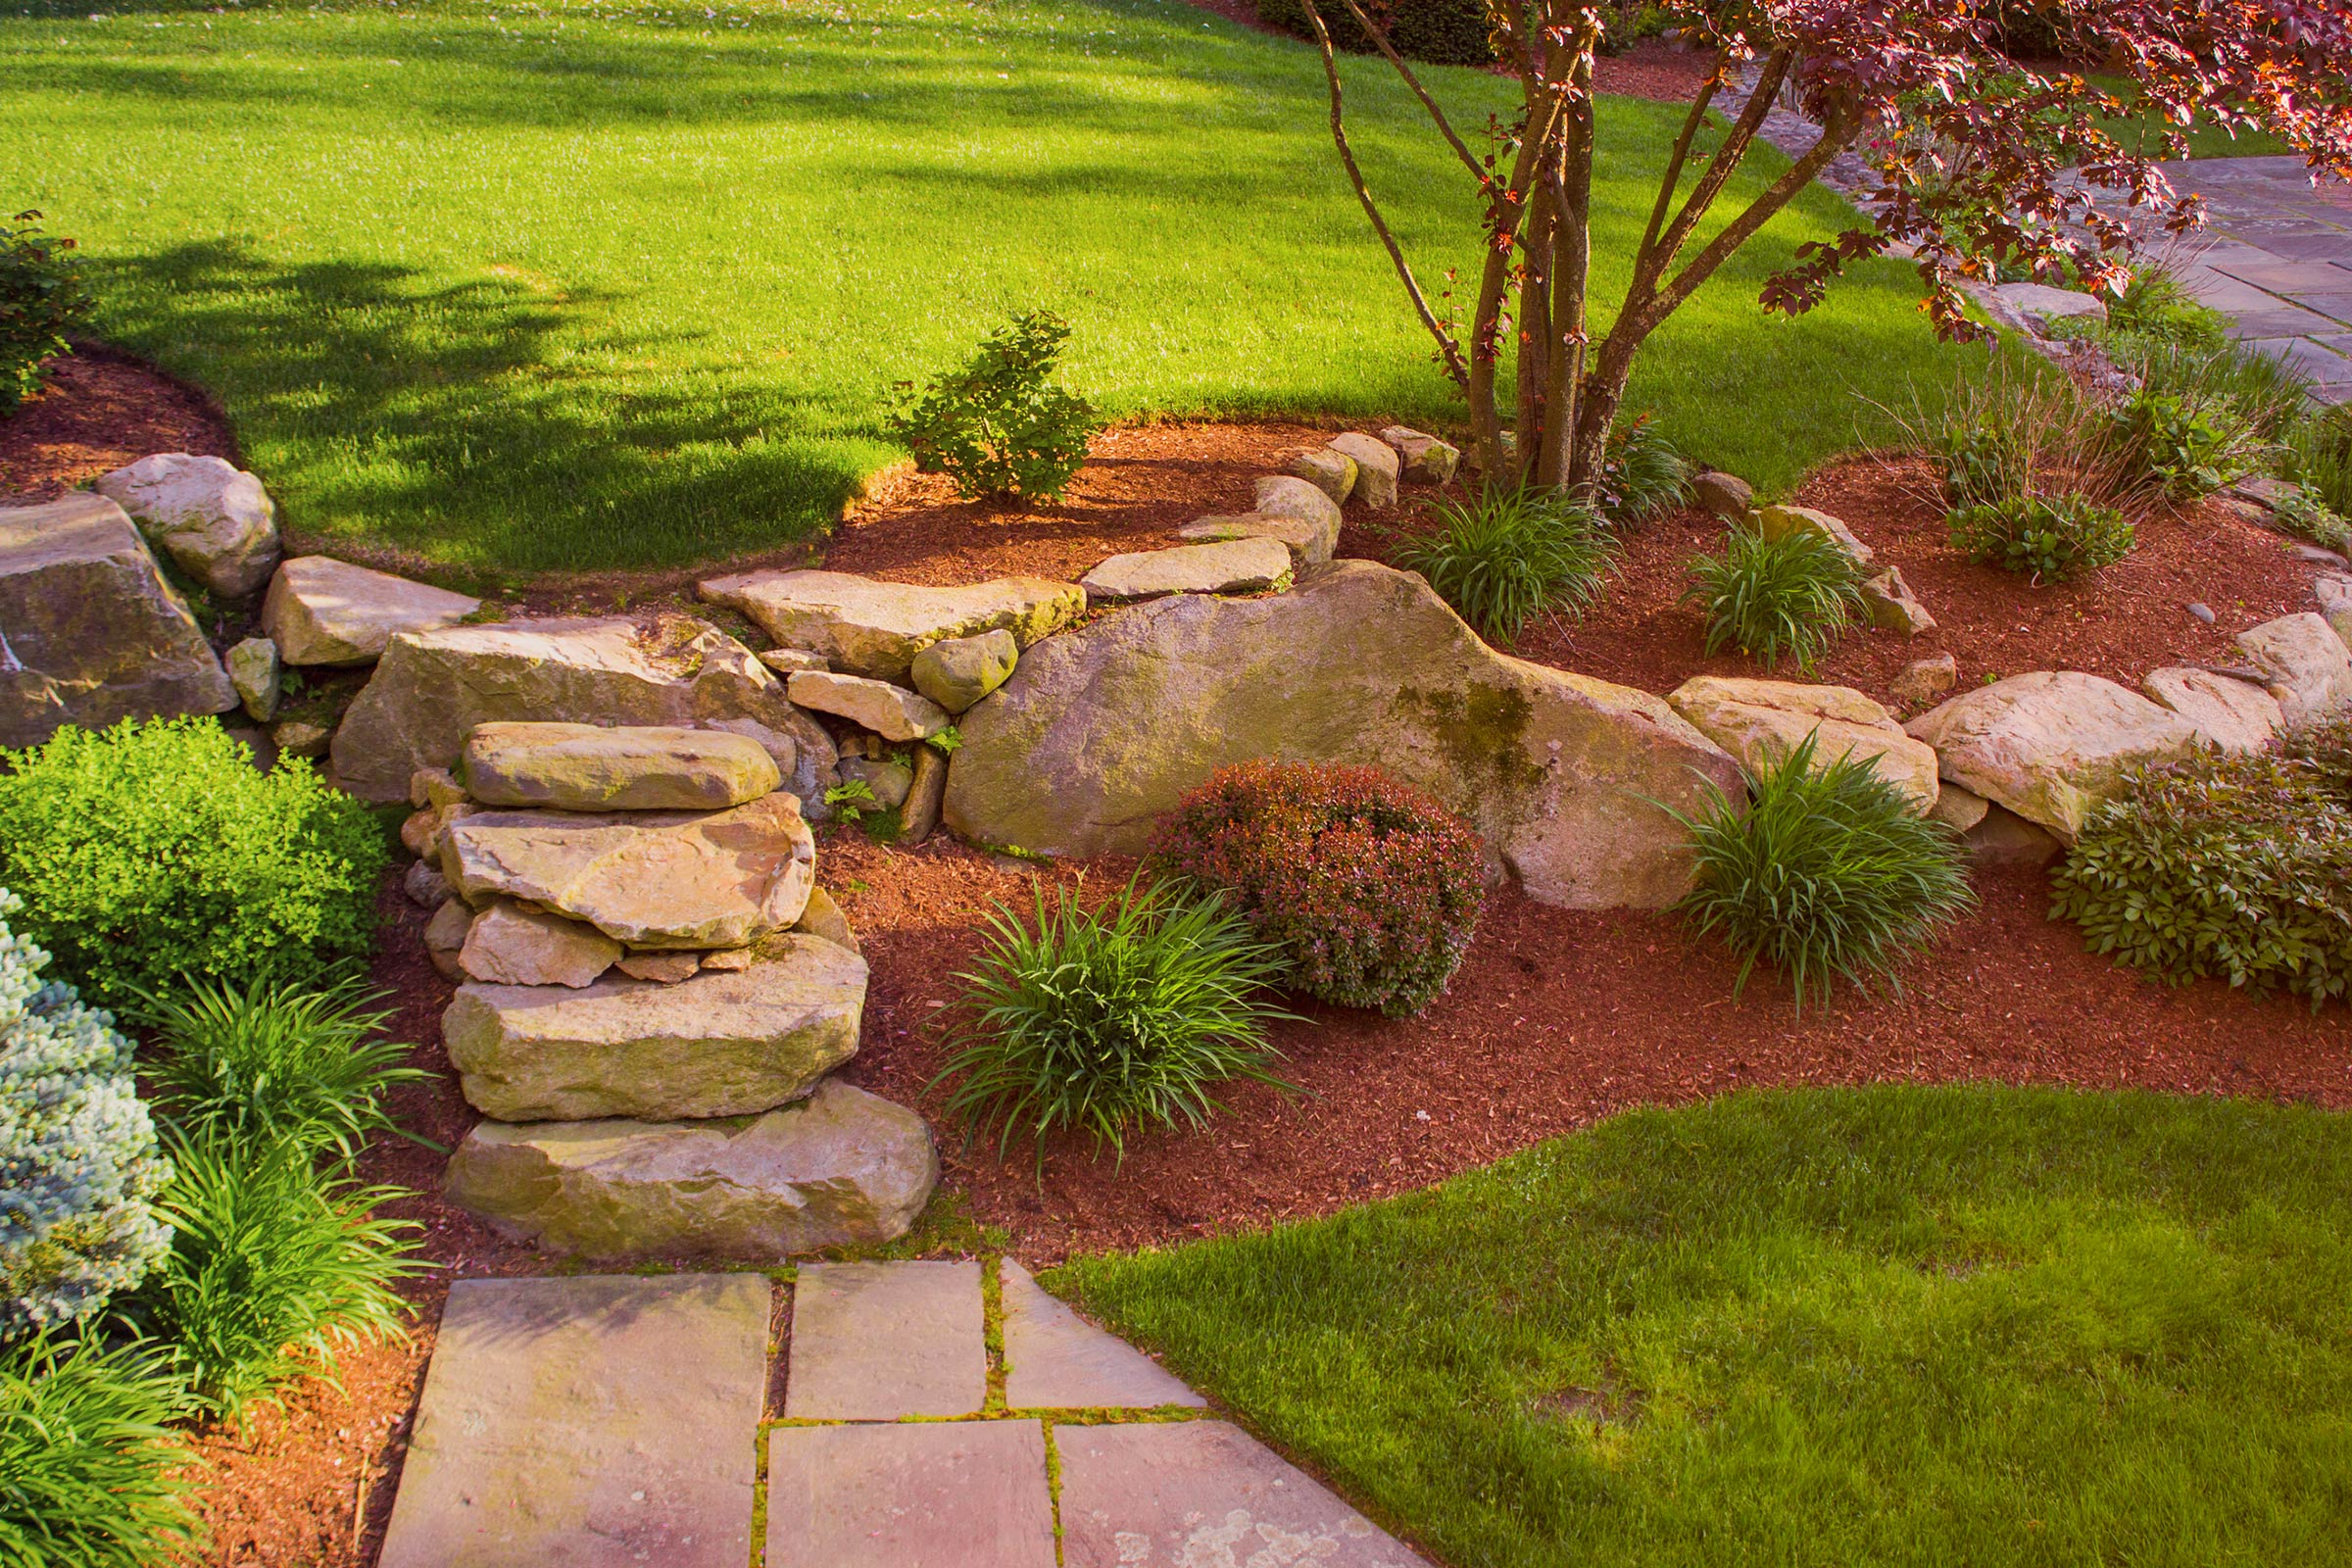 13 Things Your Landscaper Won't Tell You | Reader's Digest